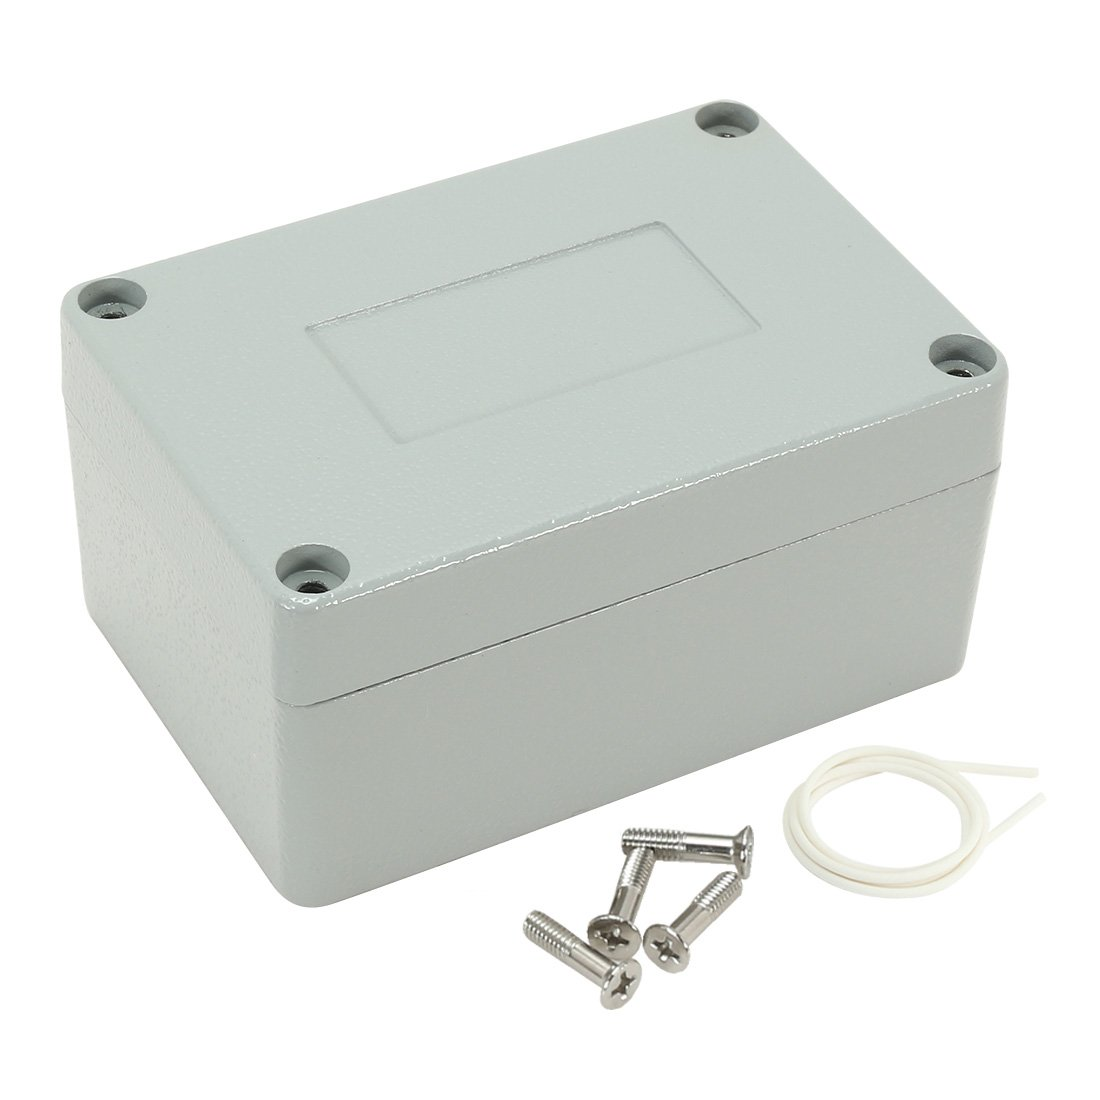 uxcell 3.9''x2.7''x2''(100mmx68mmx50mm) Aluminum Clamshell Junction Box Universal Electric Project Enclosure